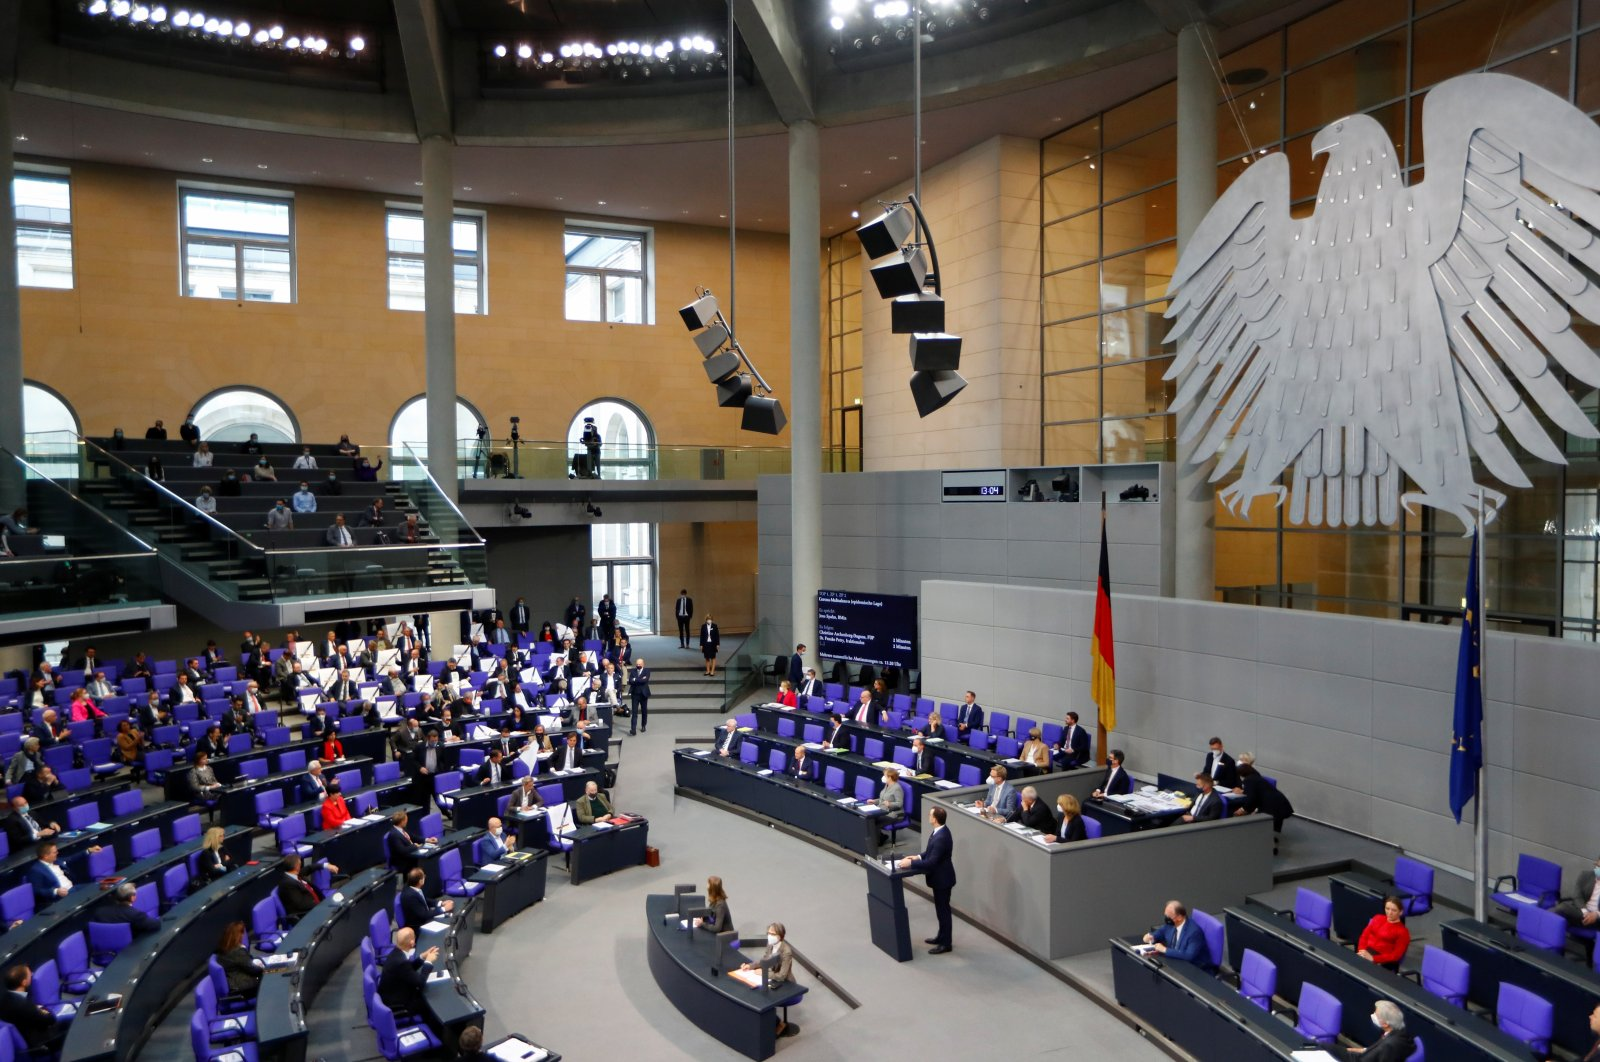 AfD parliament members hold placards as German Health Minister Jens Spahn addresses the parliament during a session of the German lower house of parliament Bundestag, in Berlin, Germany, Nov.18, 2020. (Reuters Photo)